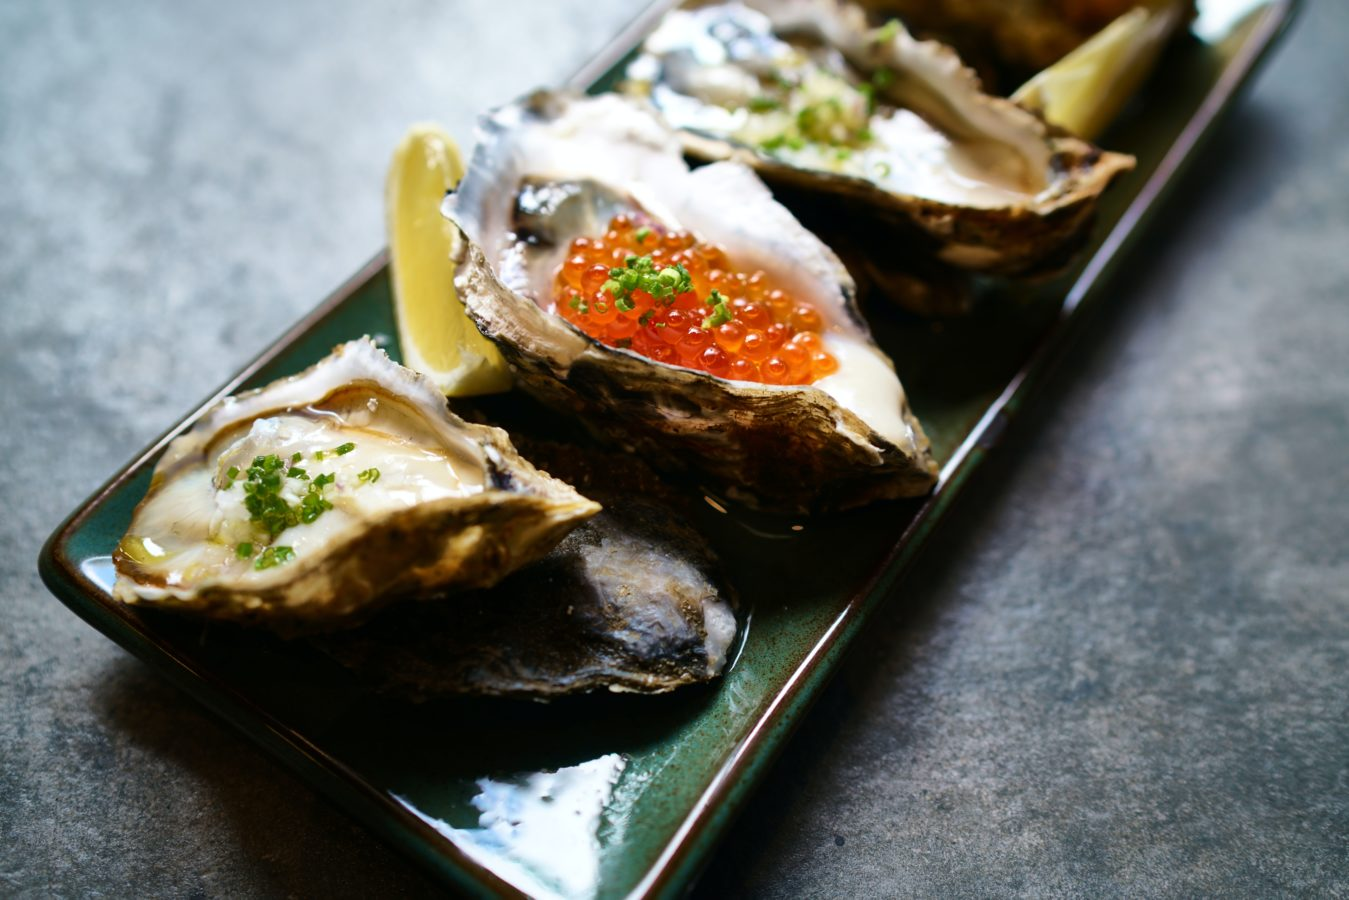 Seafood delivery in KL: Where to get the freshest oyster, tiger prawn and salmon